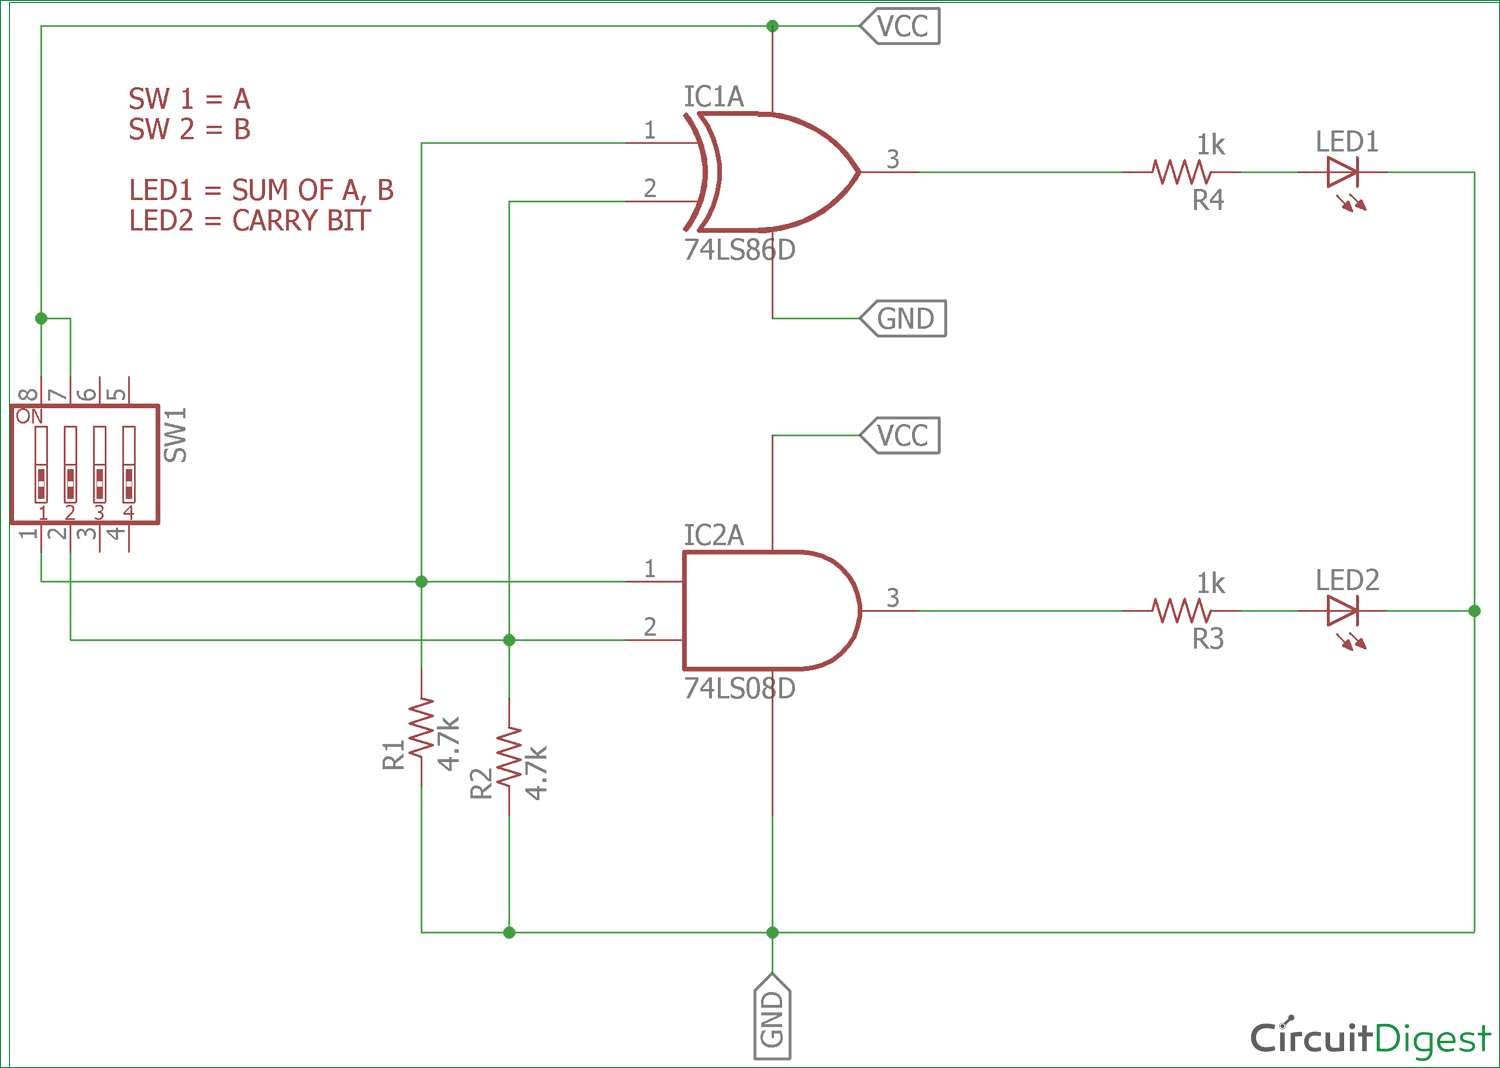 Half Adder Circuit: Theory, Truth Table & Construction